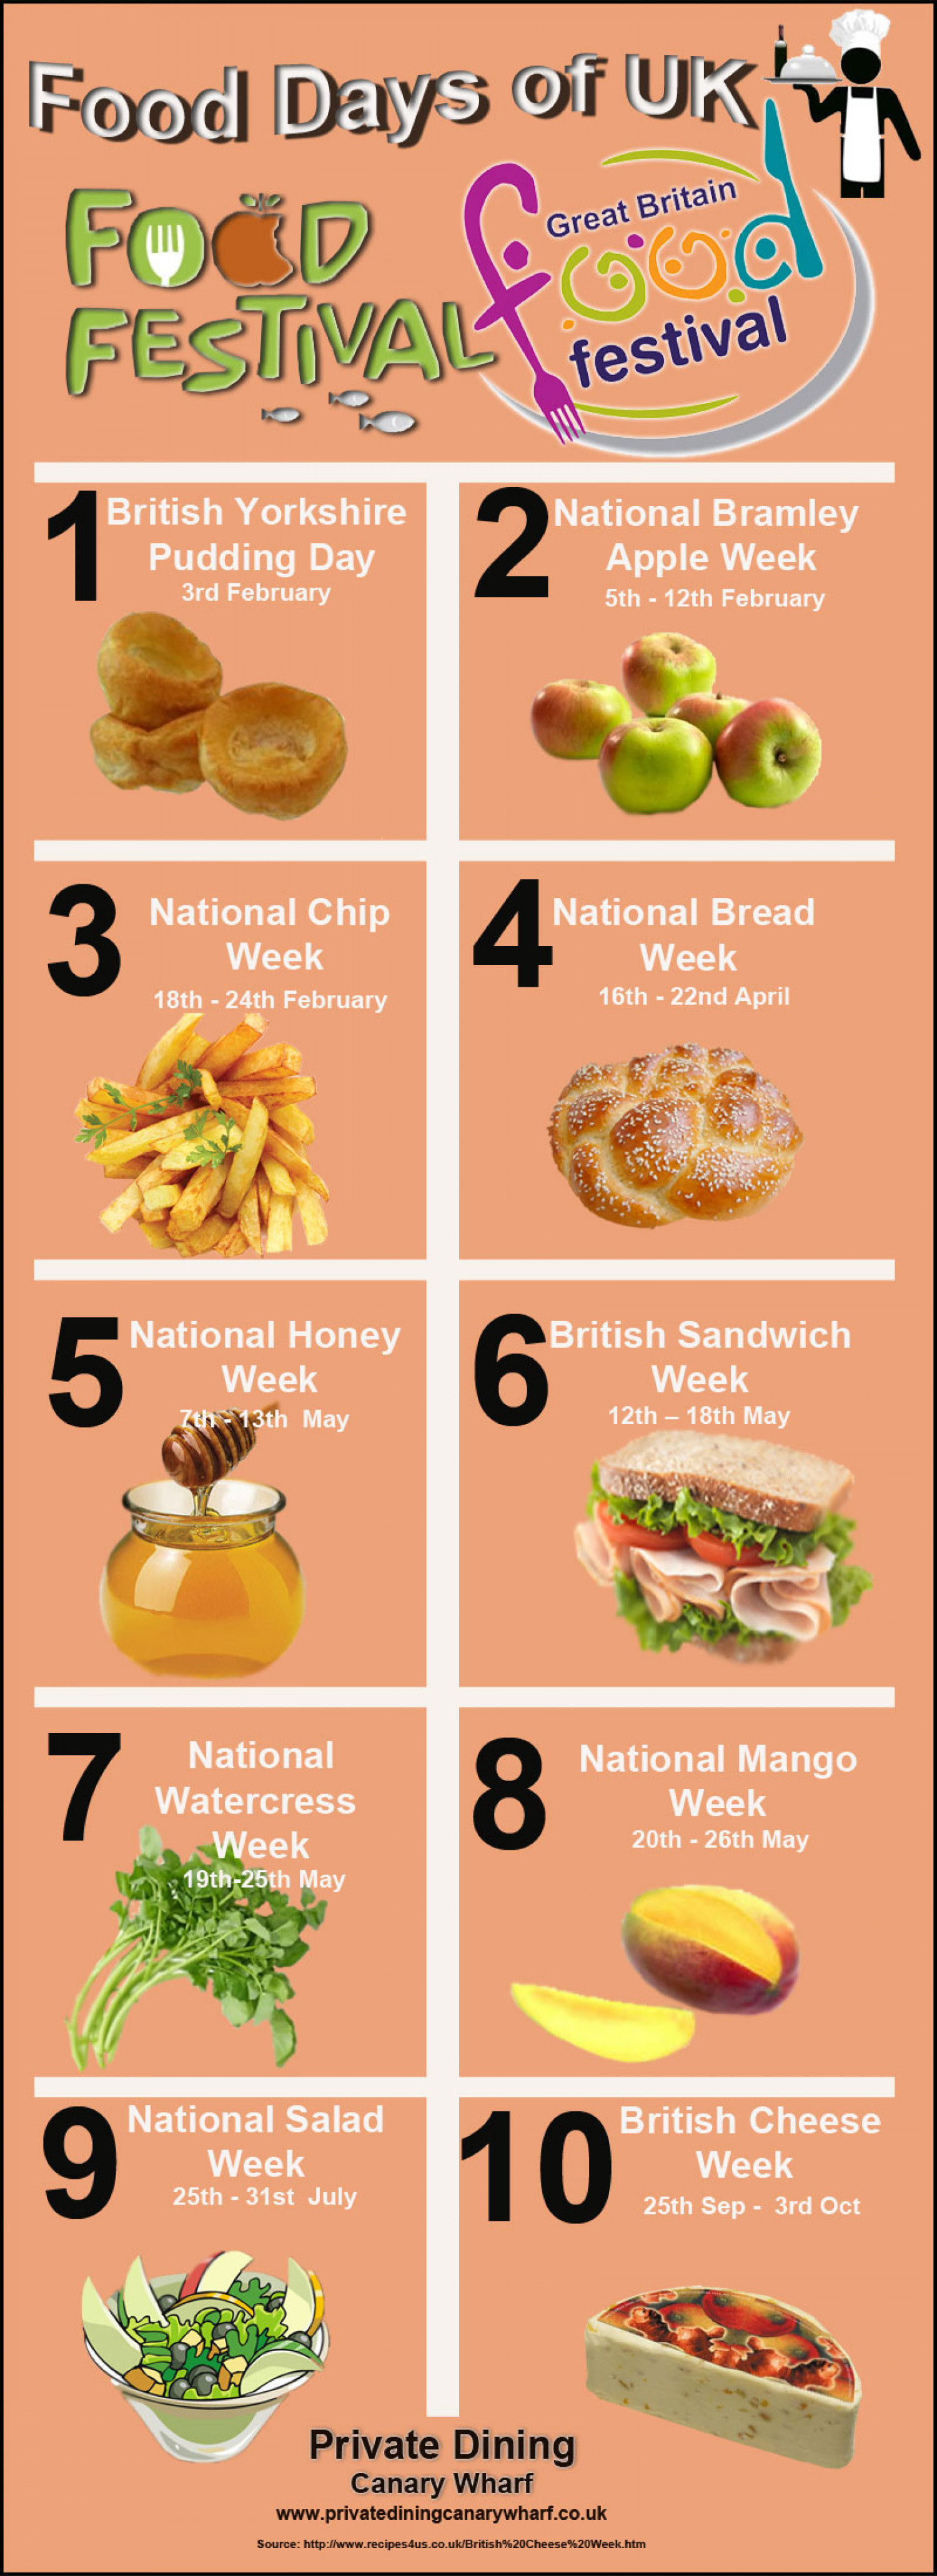 Food days of UK Infographic